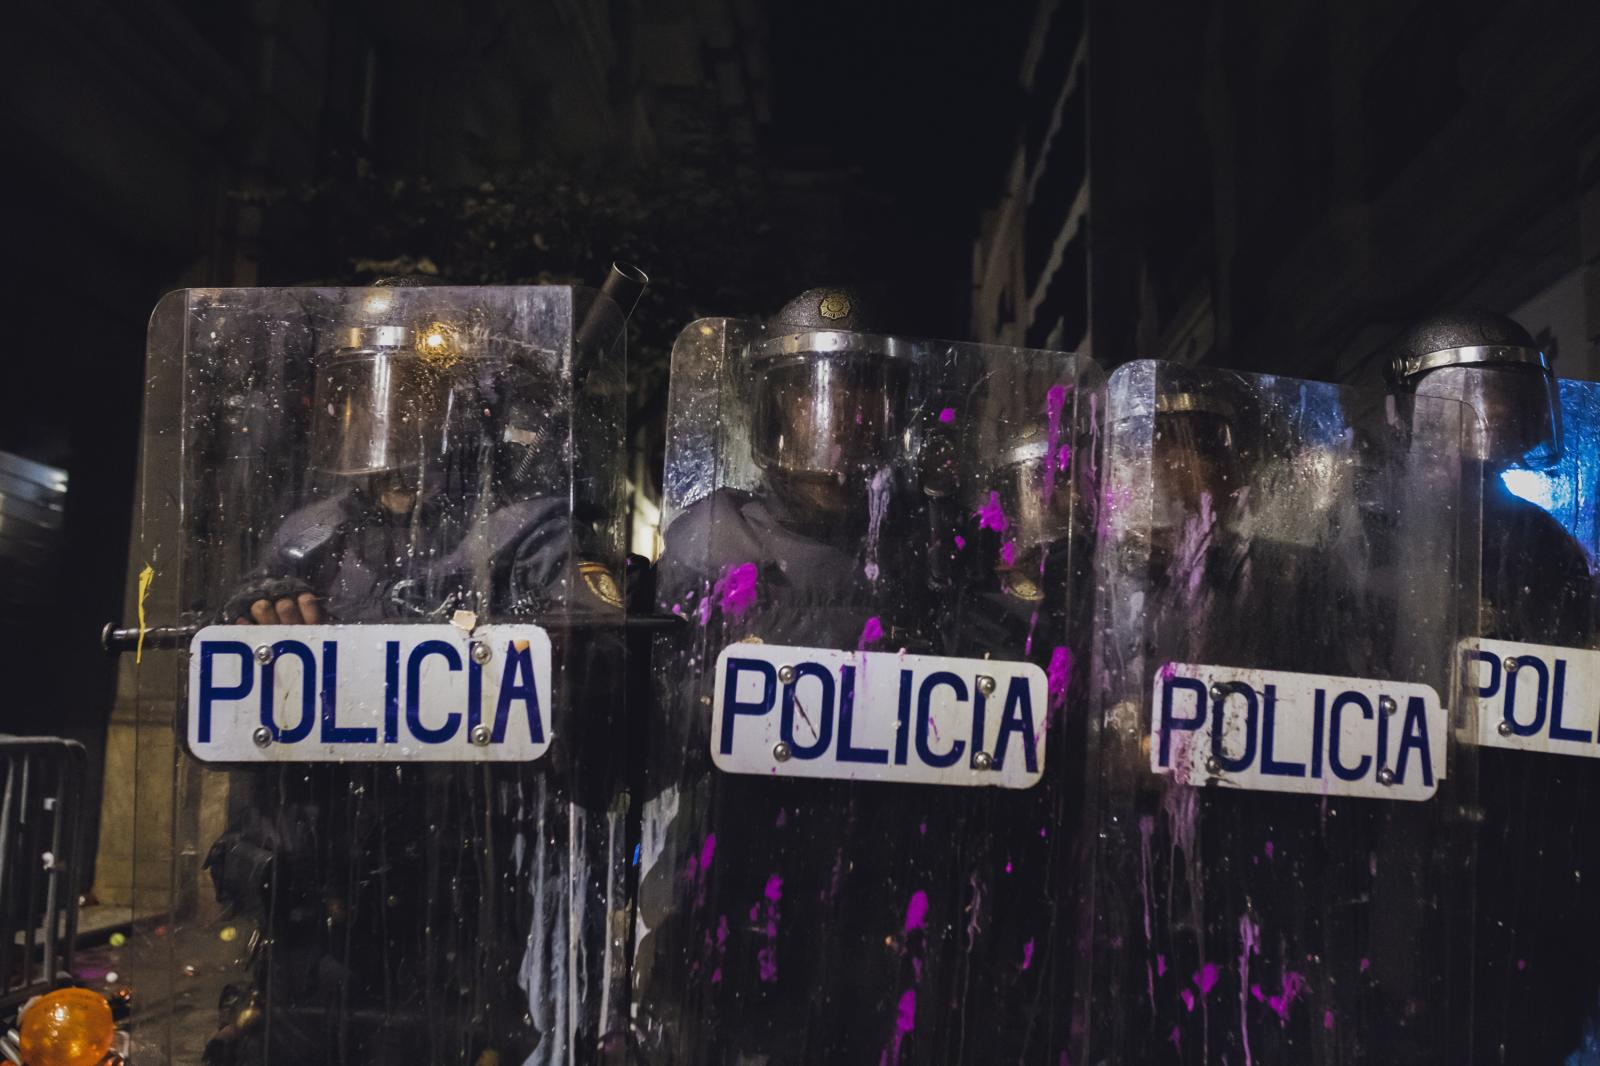 Riot police shelter themselves from balloons with colorful paint. The separatist movement is proud of its history of mostly peaceful campaigning. Officials have accused a relatively small number of agitators of provoking the recent riots. Spanish authorities suspect a secretive new group called Tsunami Democratic is using encrypted messages to orchestrate some of the attacks in the streets by using an app designed to expand and interact with a network of contacts that share the same QR code, to allow, to organize, promote and coordinate new actions and forms of protest. The group gained nearly 340,000 followers on its main channel in Telegram. A National Court judge ordered the closure of websites linked to the group. (October 26,2019. Barcelona, Spain)